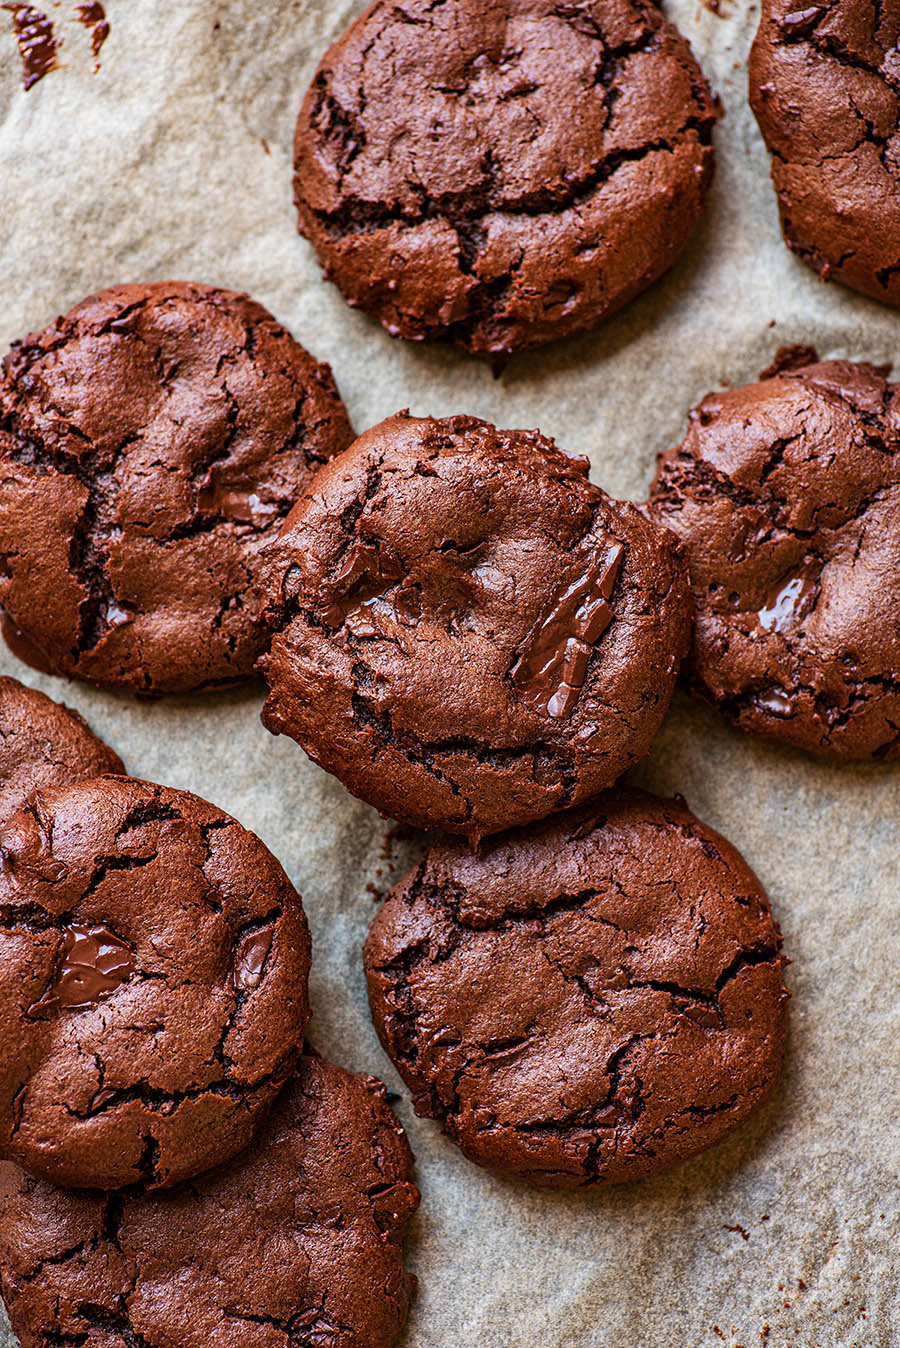 Chocolate cookies piled on a baking sheet.